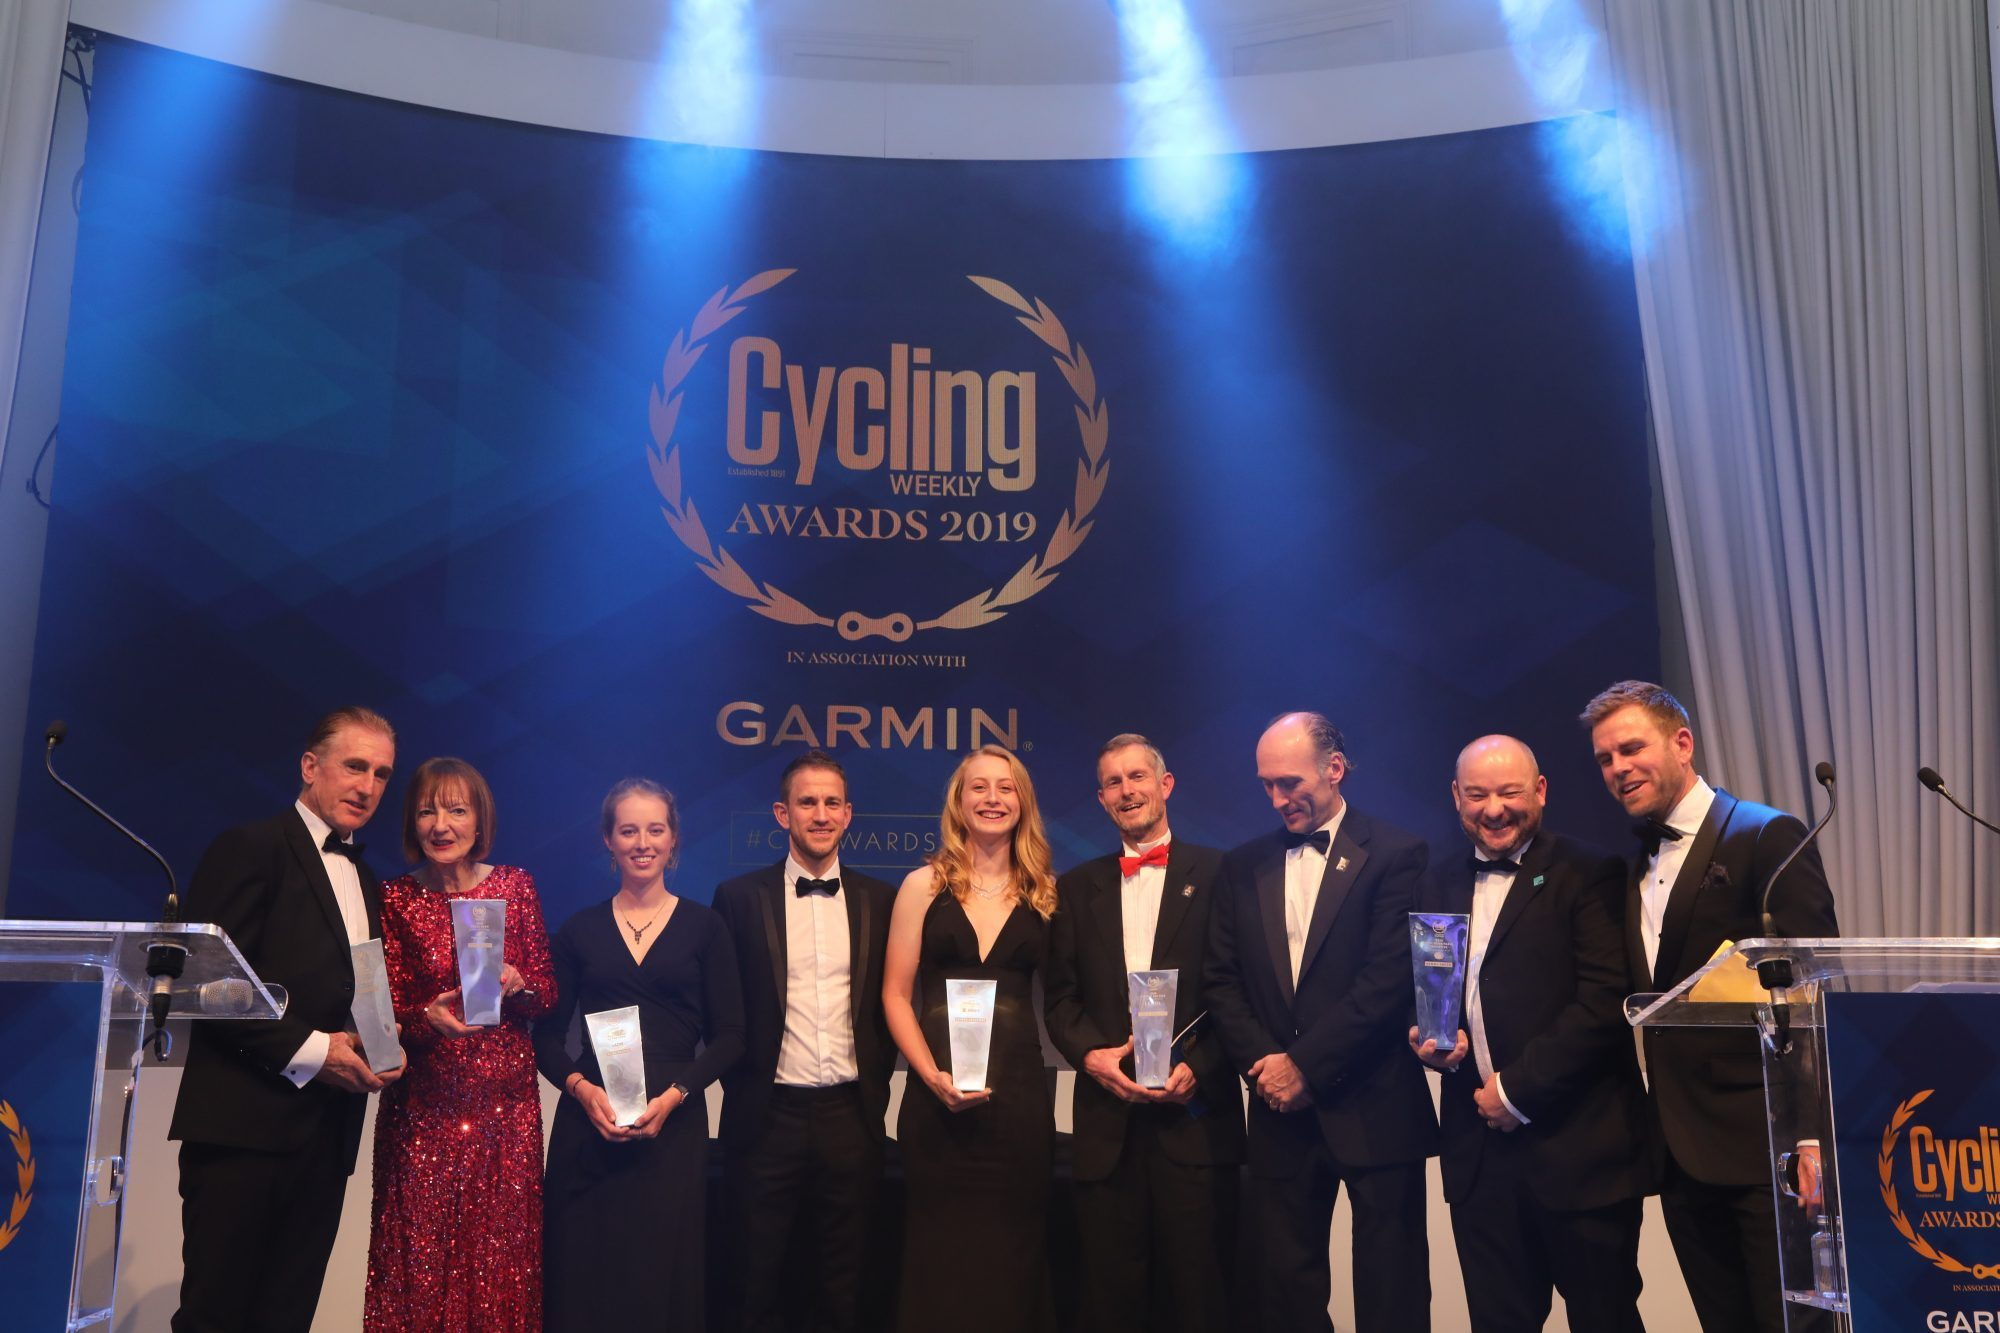 Winners announced in Cycling Weekly Awards 2019 in association with Garmin